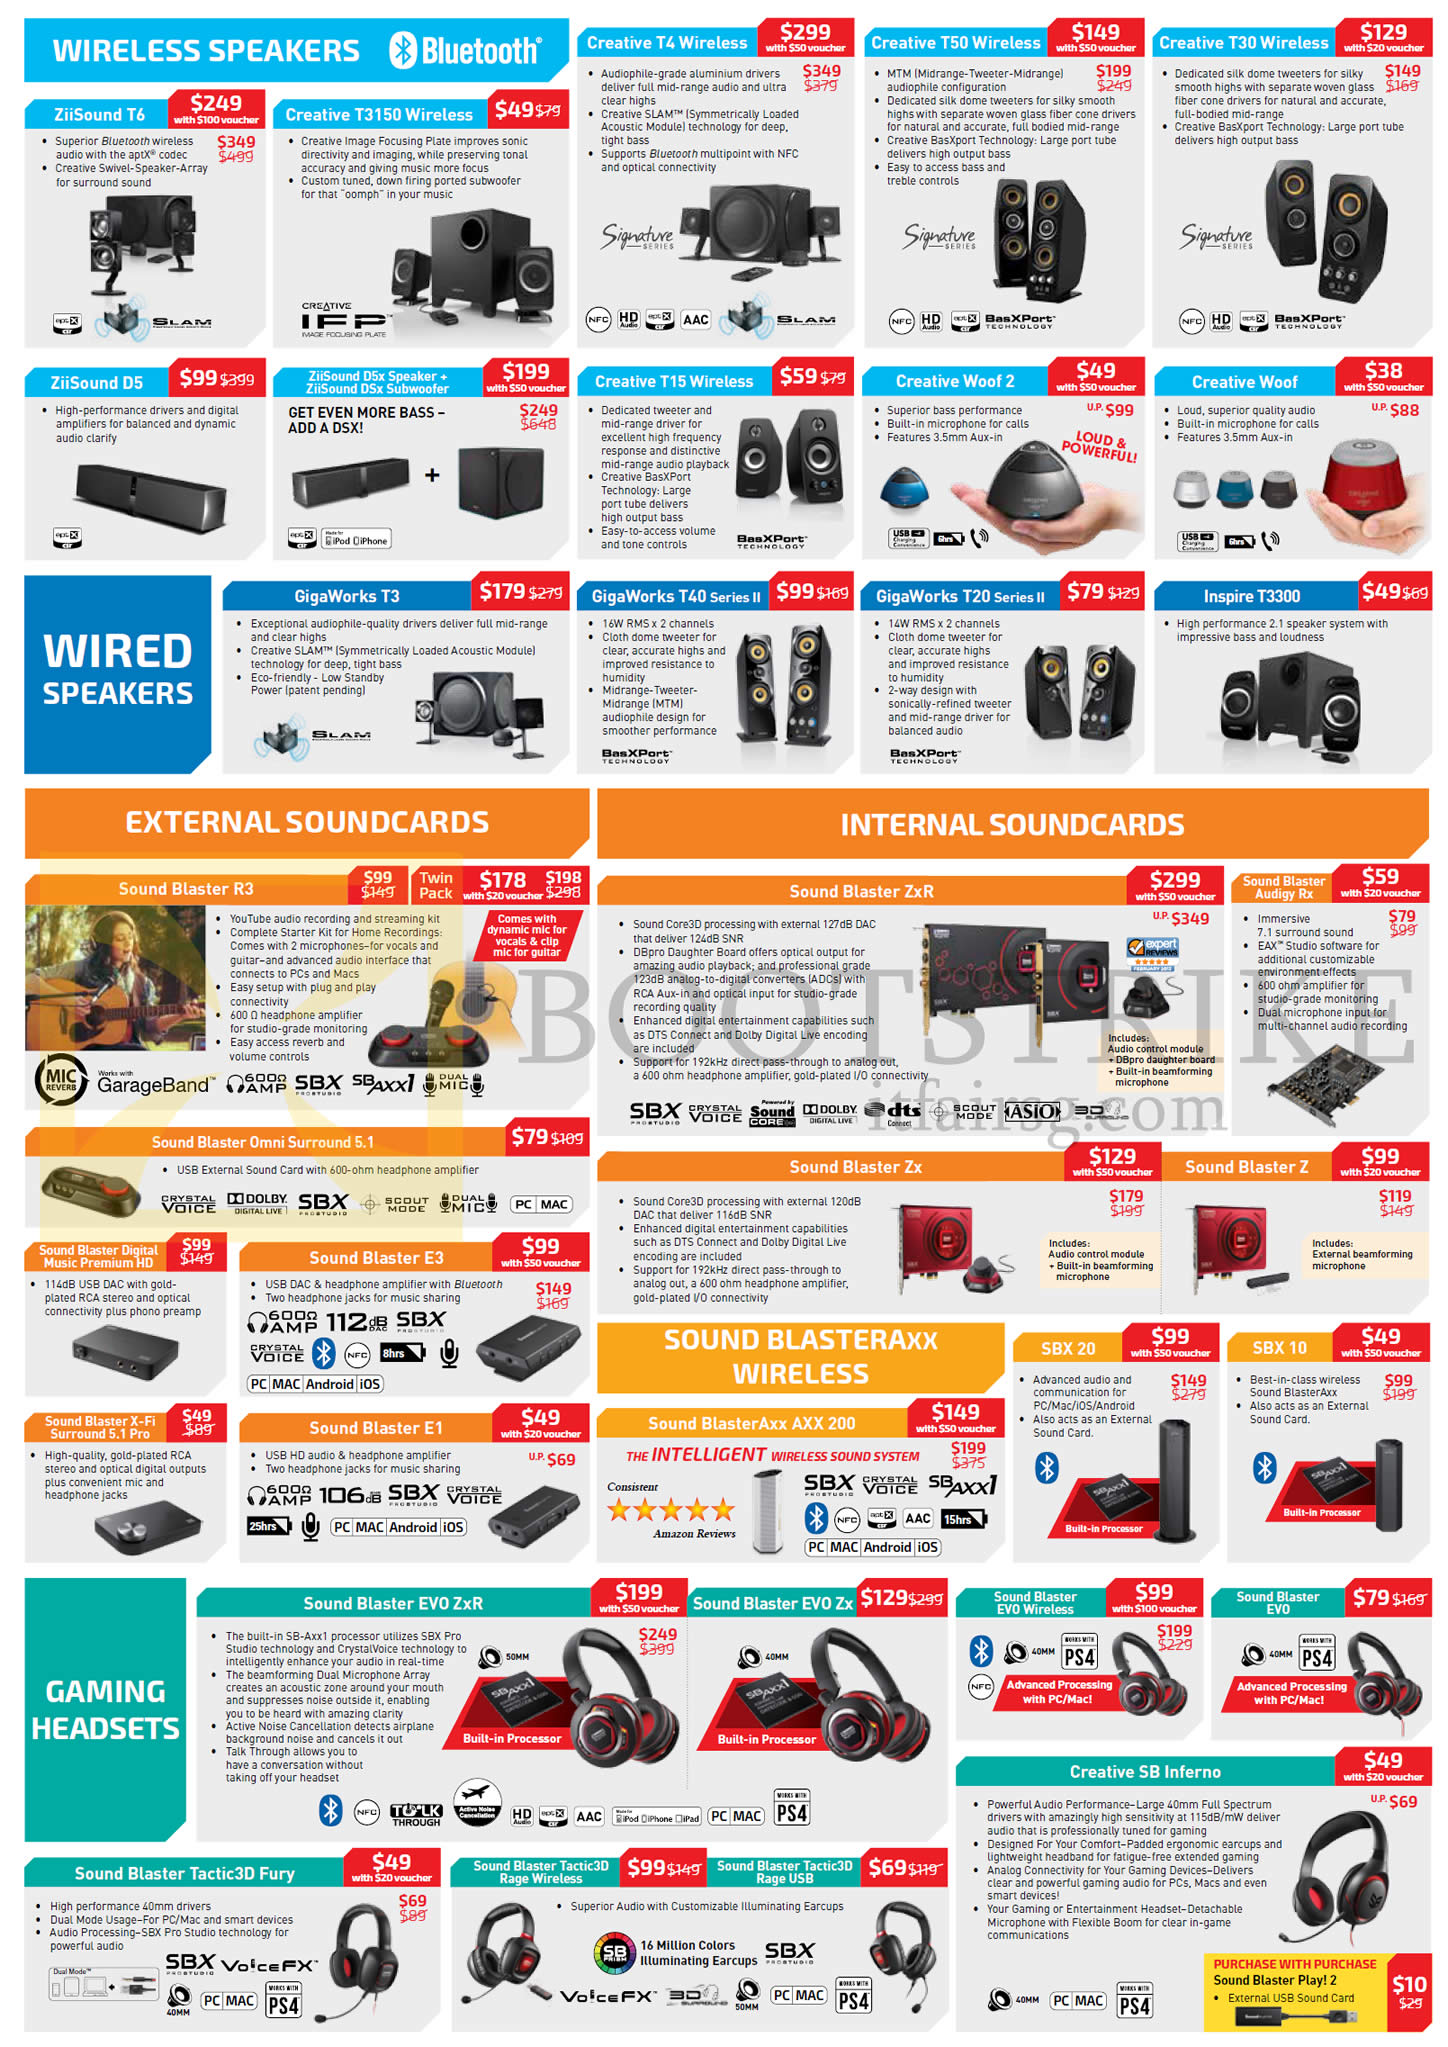 PC SHOW 2015 price list image brochure of Creative Speakers, Wireless, Wired Speakers, Gaming Headsets, Sound Cards, Sound Blaster Axx, Evo ZxR, Tactic3D Fury, SB Inferno, SBX, Zx, Z, Omni Surround, Audigy